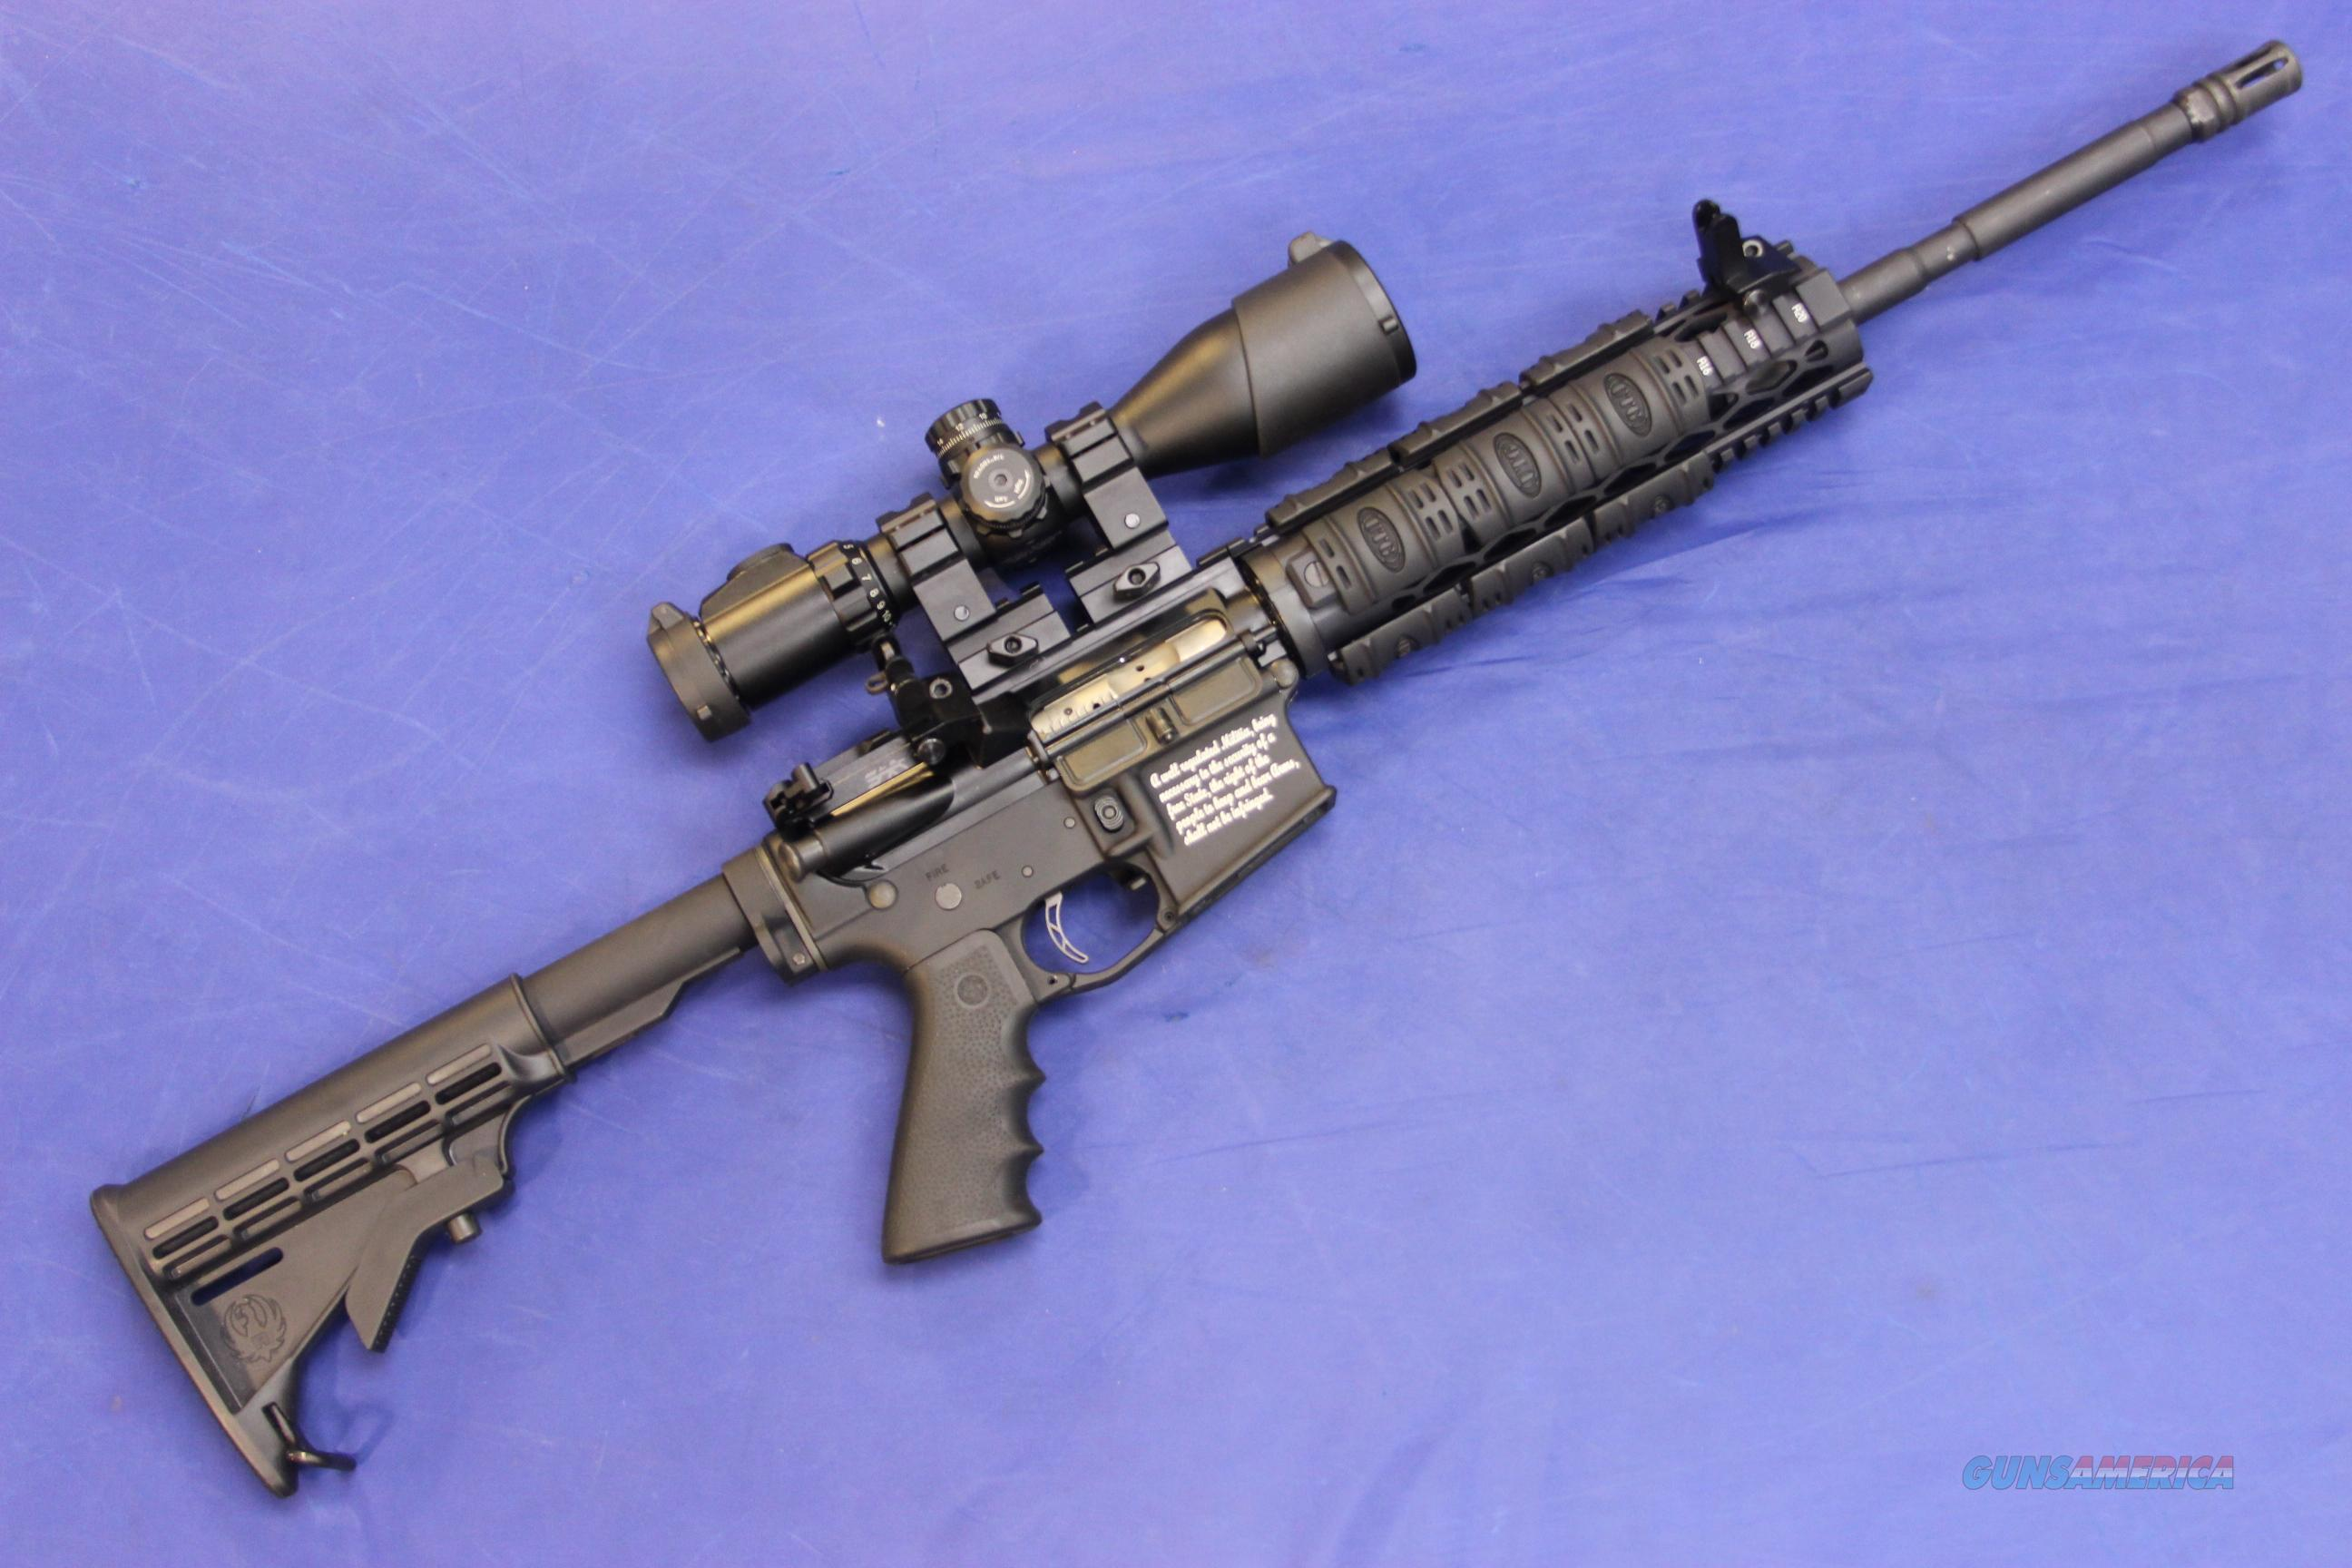 STAG ARMS STAG-15 5.56 mm. w/ SOFT CASE  Guns > Rifles > Sig - Sauer/Sigarms Rifles